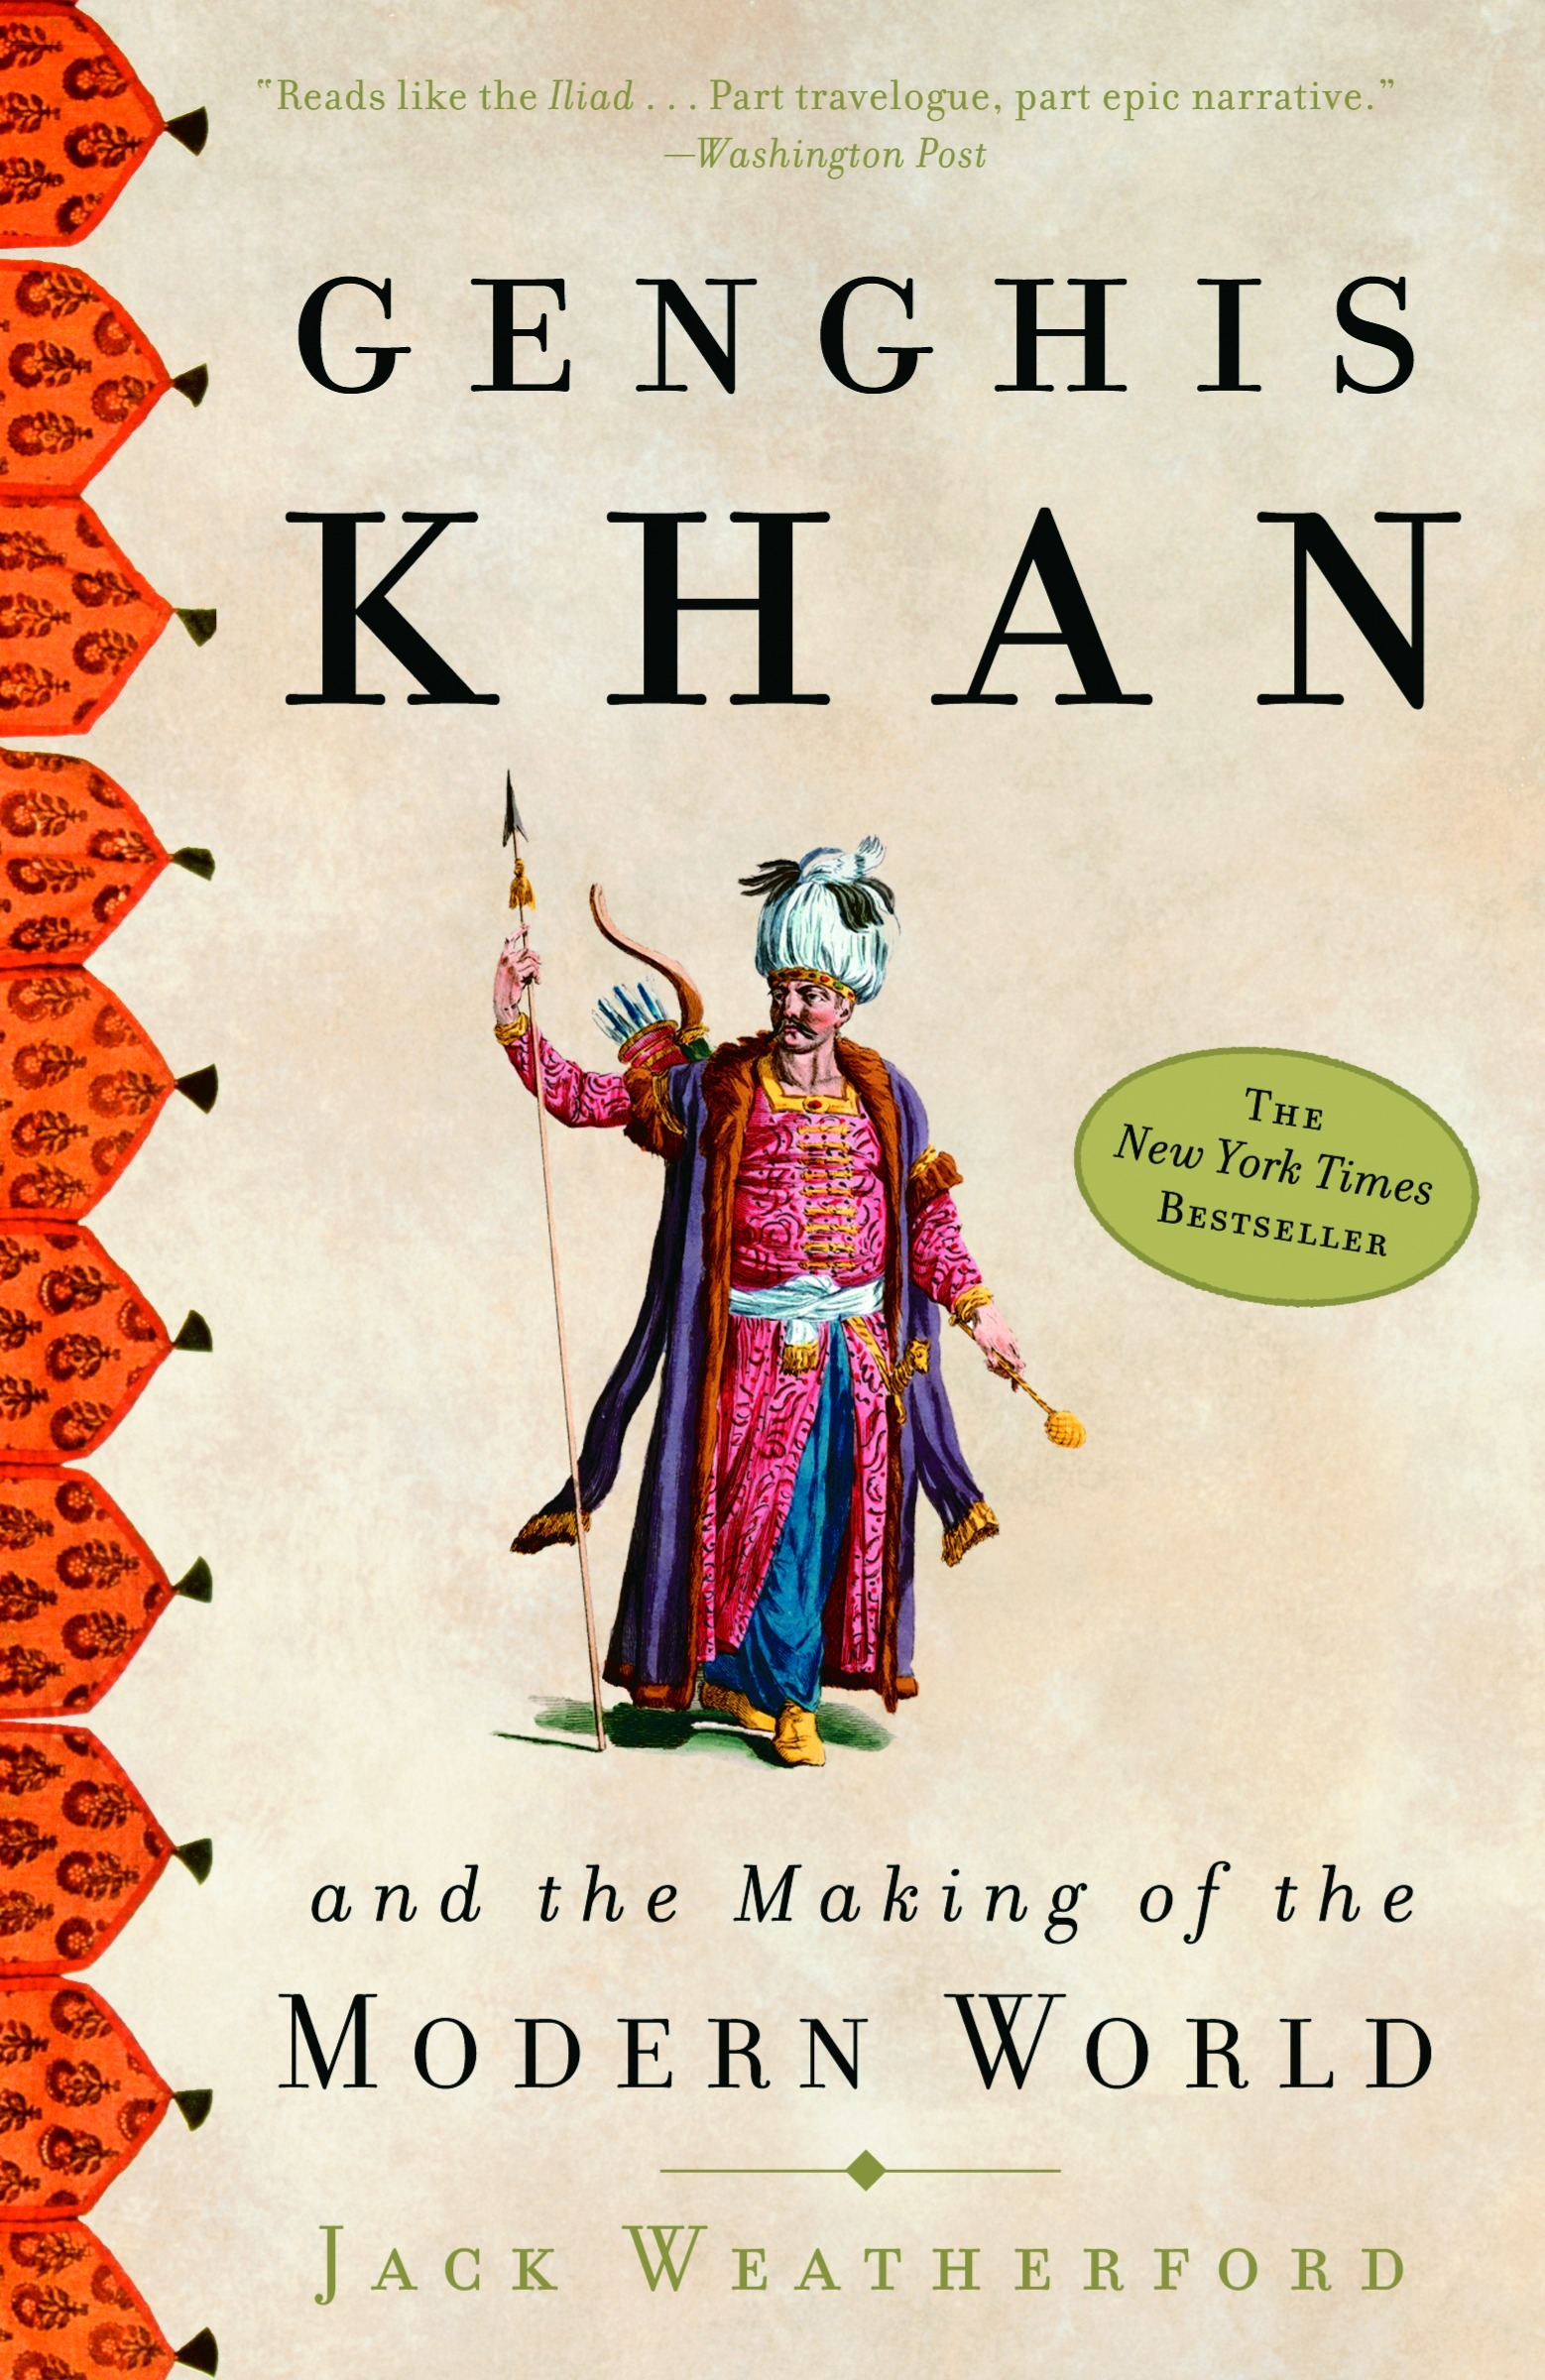 Genghis Khan & Making Of Moder